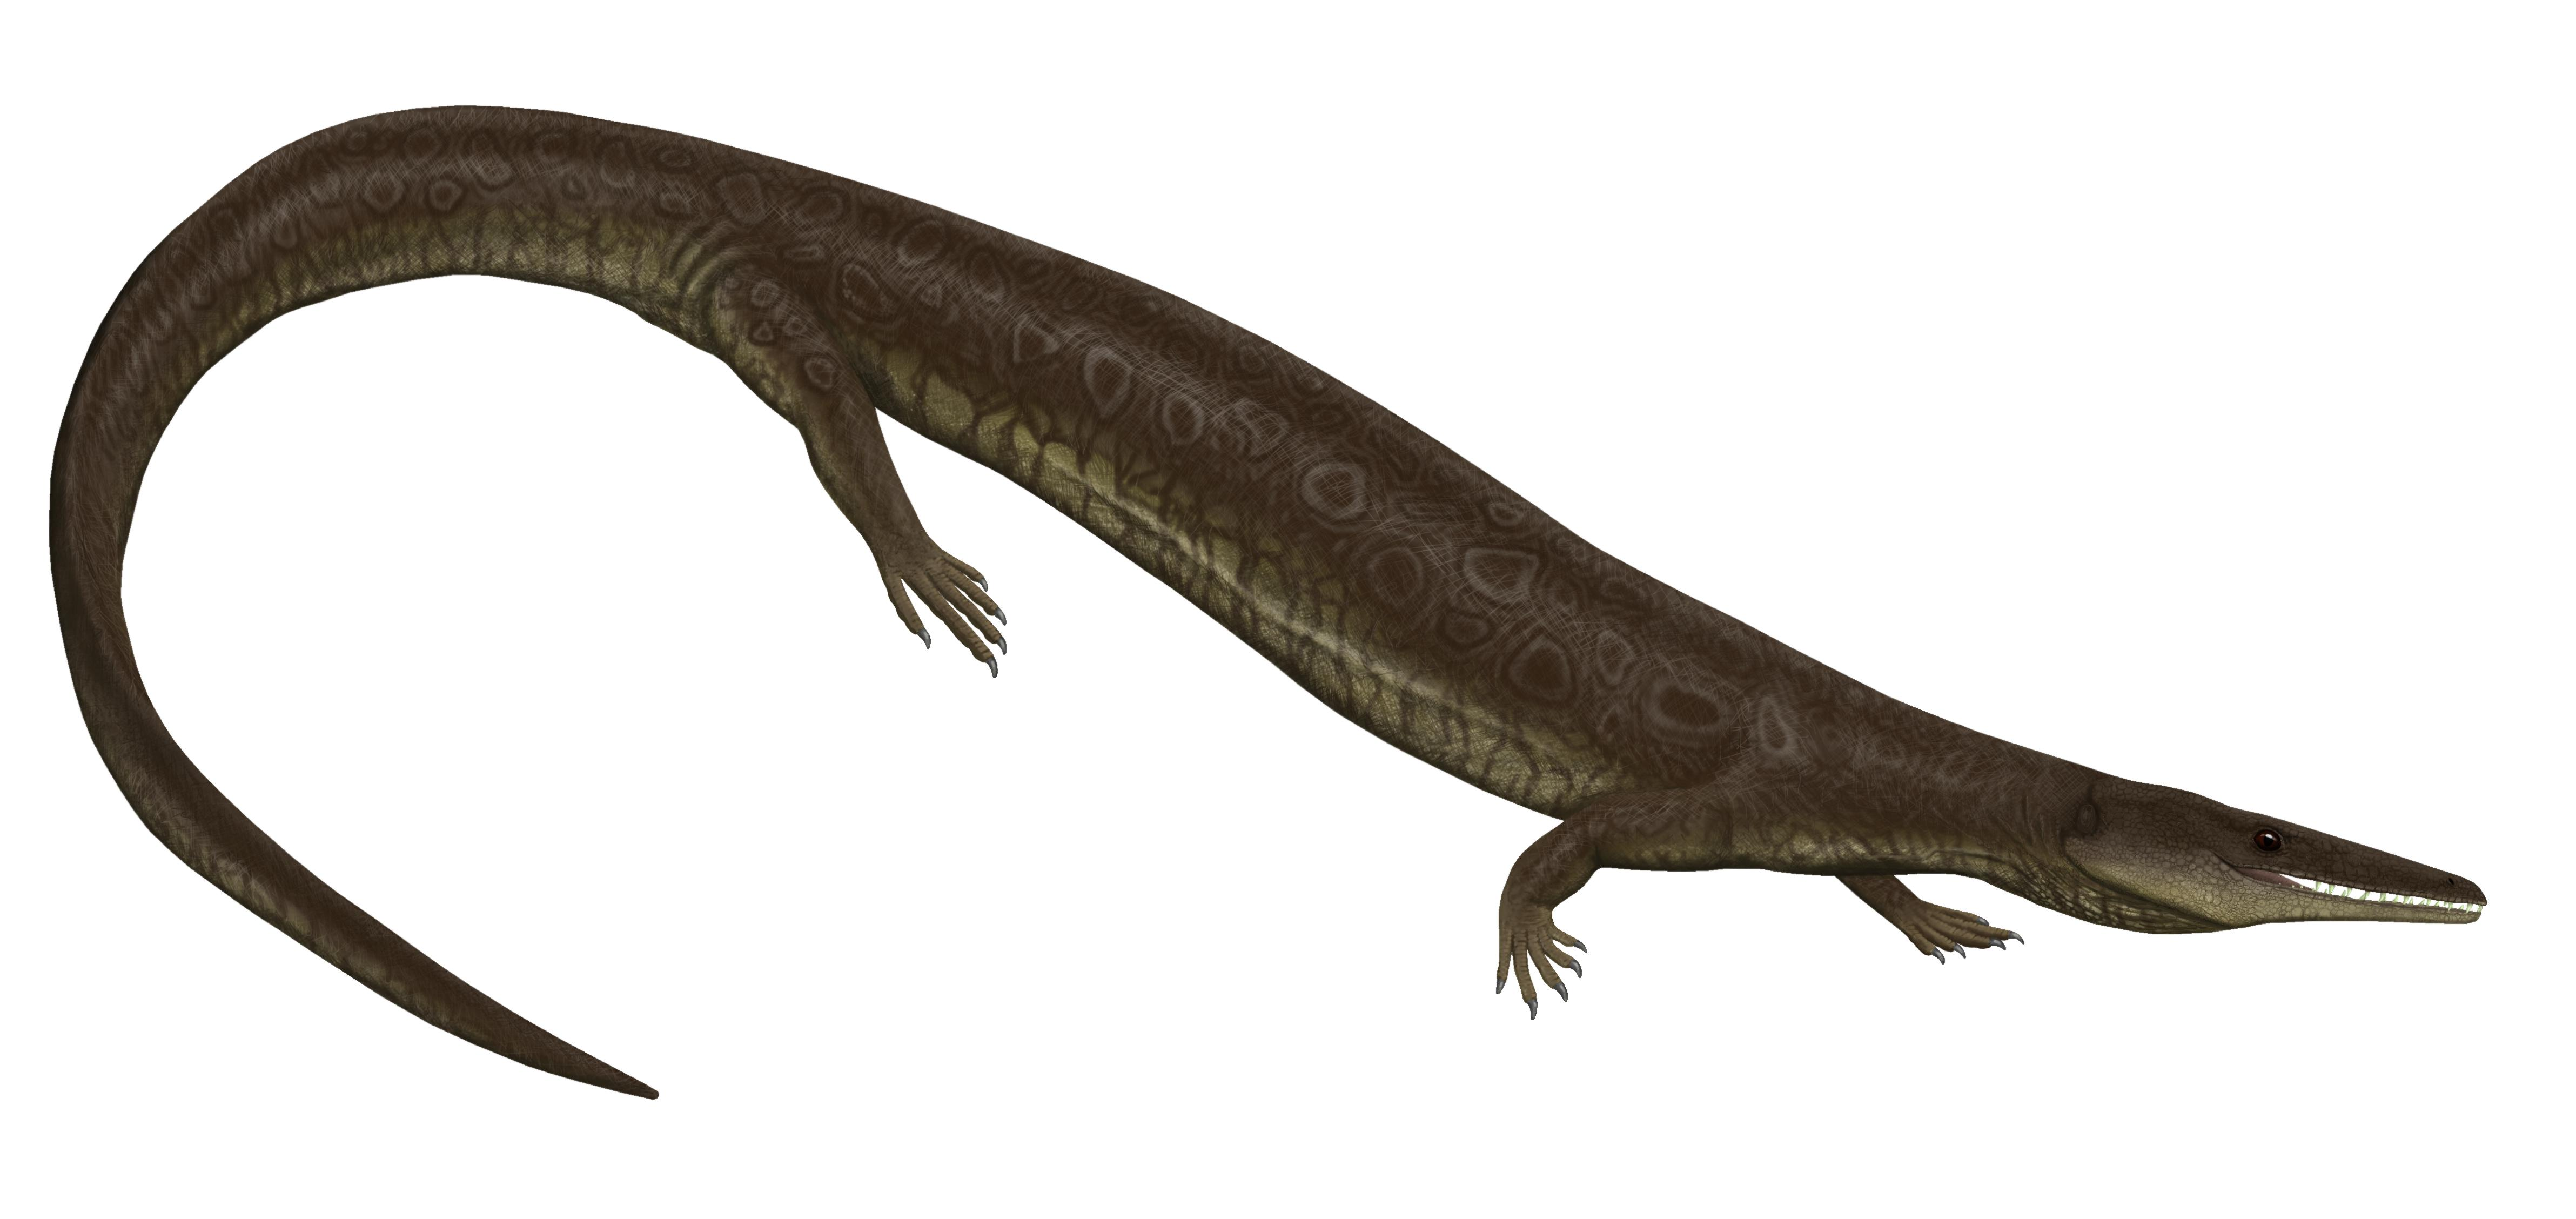 Depiction of Mosasauroidea